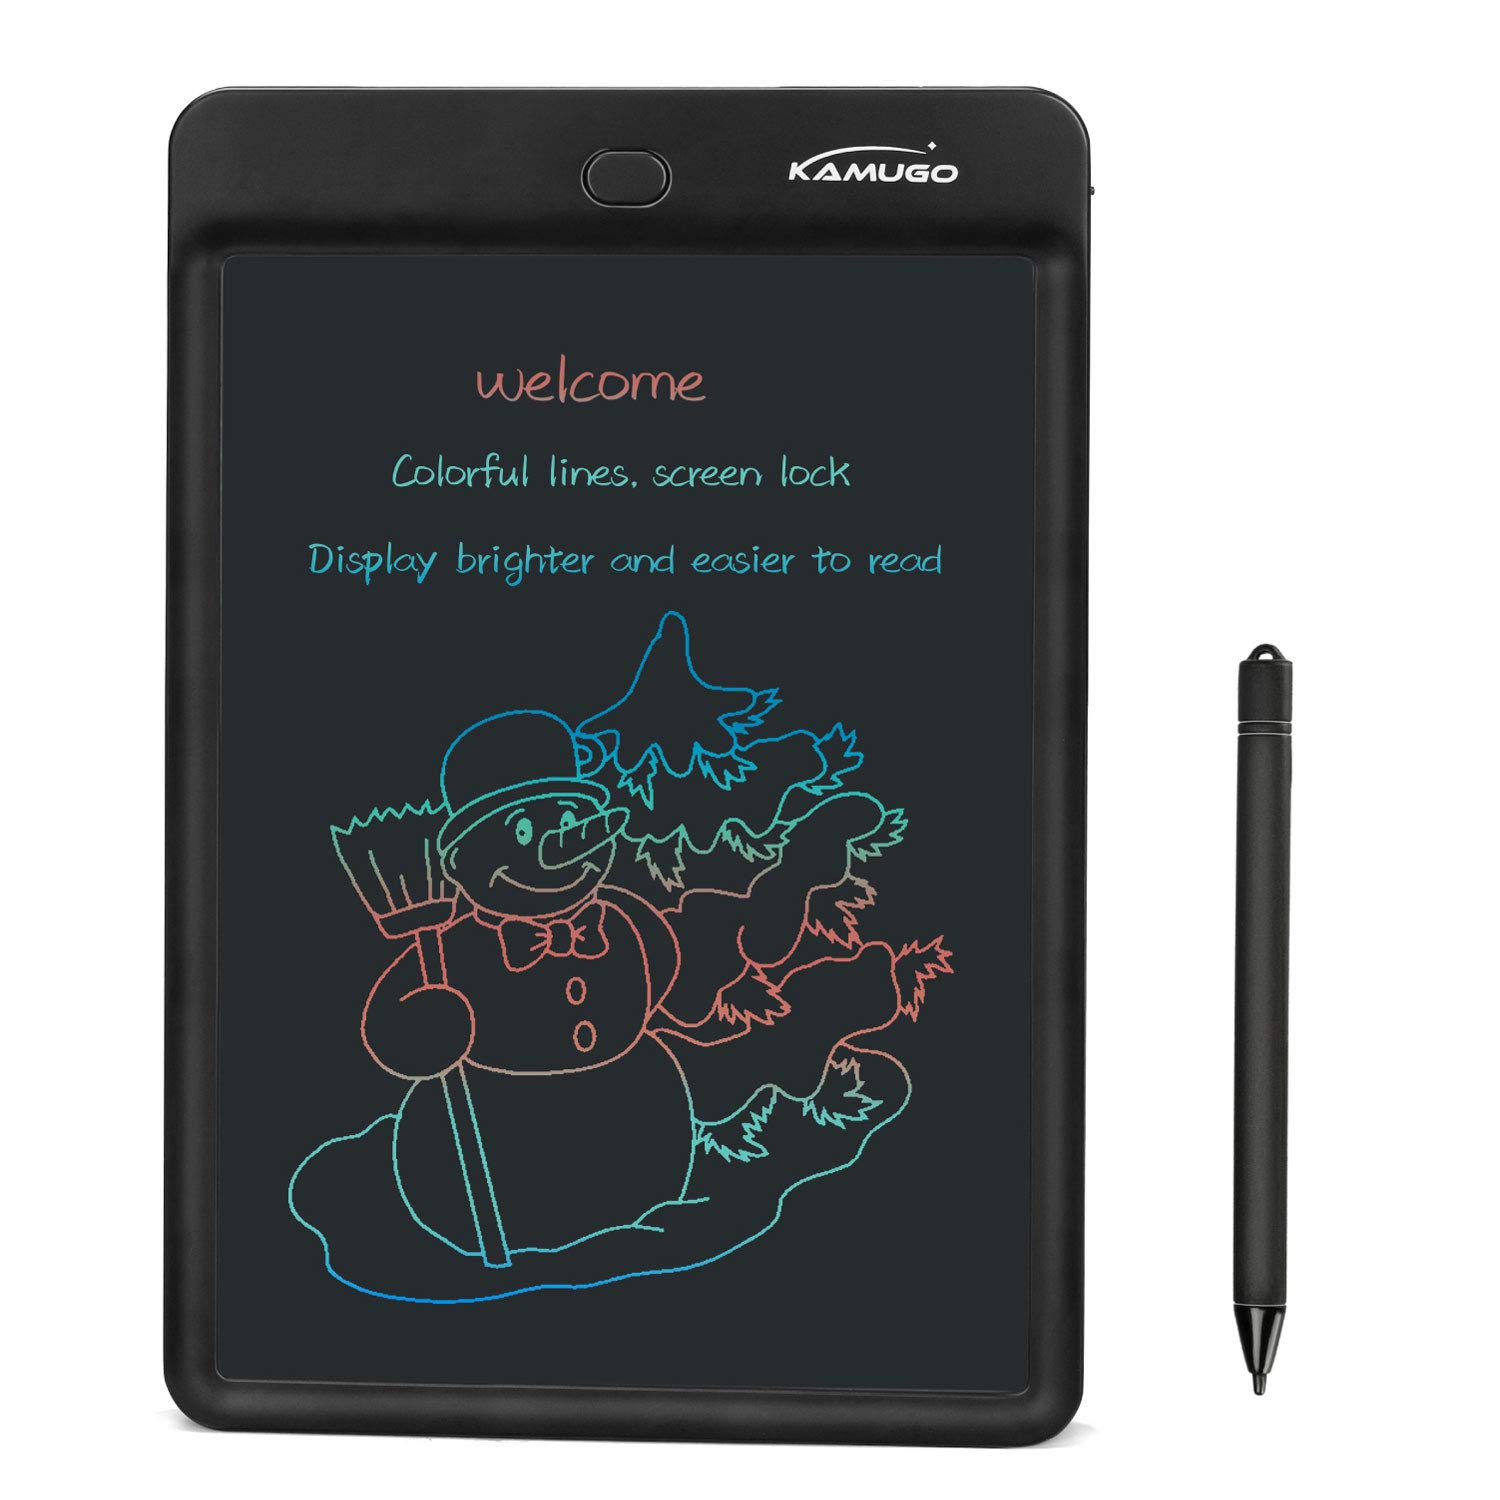 KAMUGO LCD Board Writing Tablet LCD 10 Inch, Graphic Electronic Drawing and Writing Tablet with Screen Lock for Kids and Adults, Ideal for Home, School, Office, Memo, and Notebook, Black